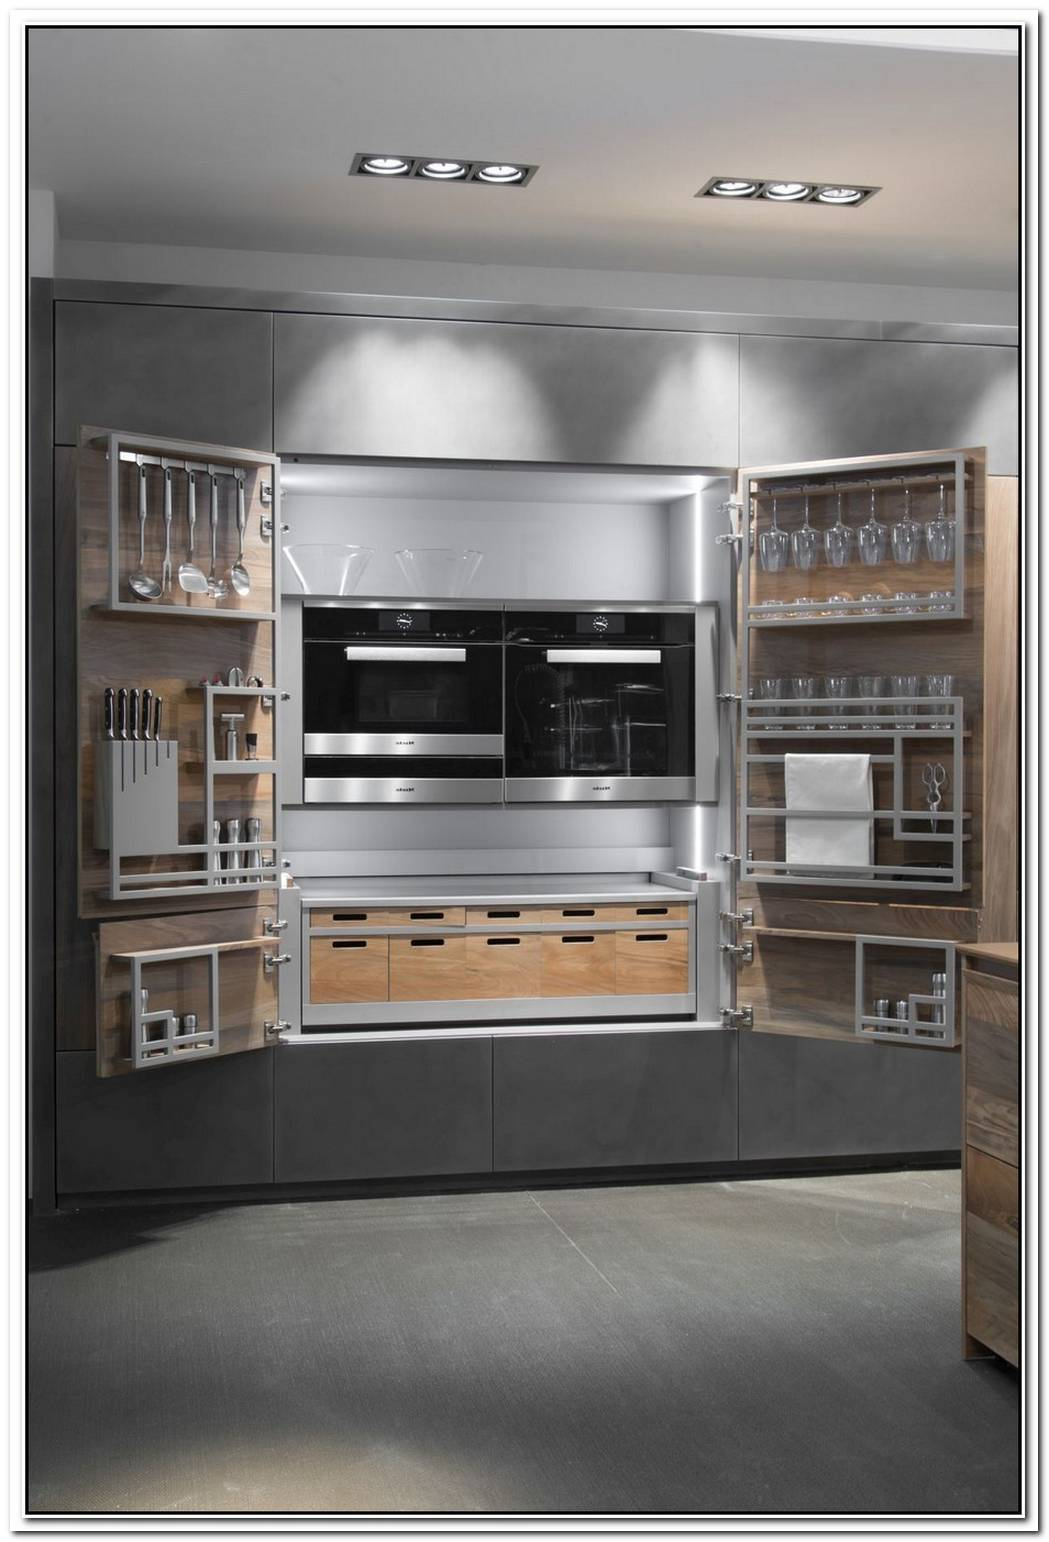 Toncelli Brings Luxury To Our Homes Through Exquisite Design